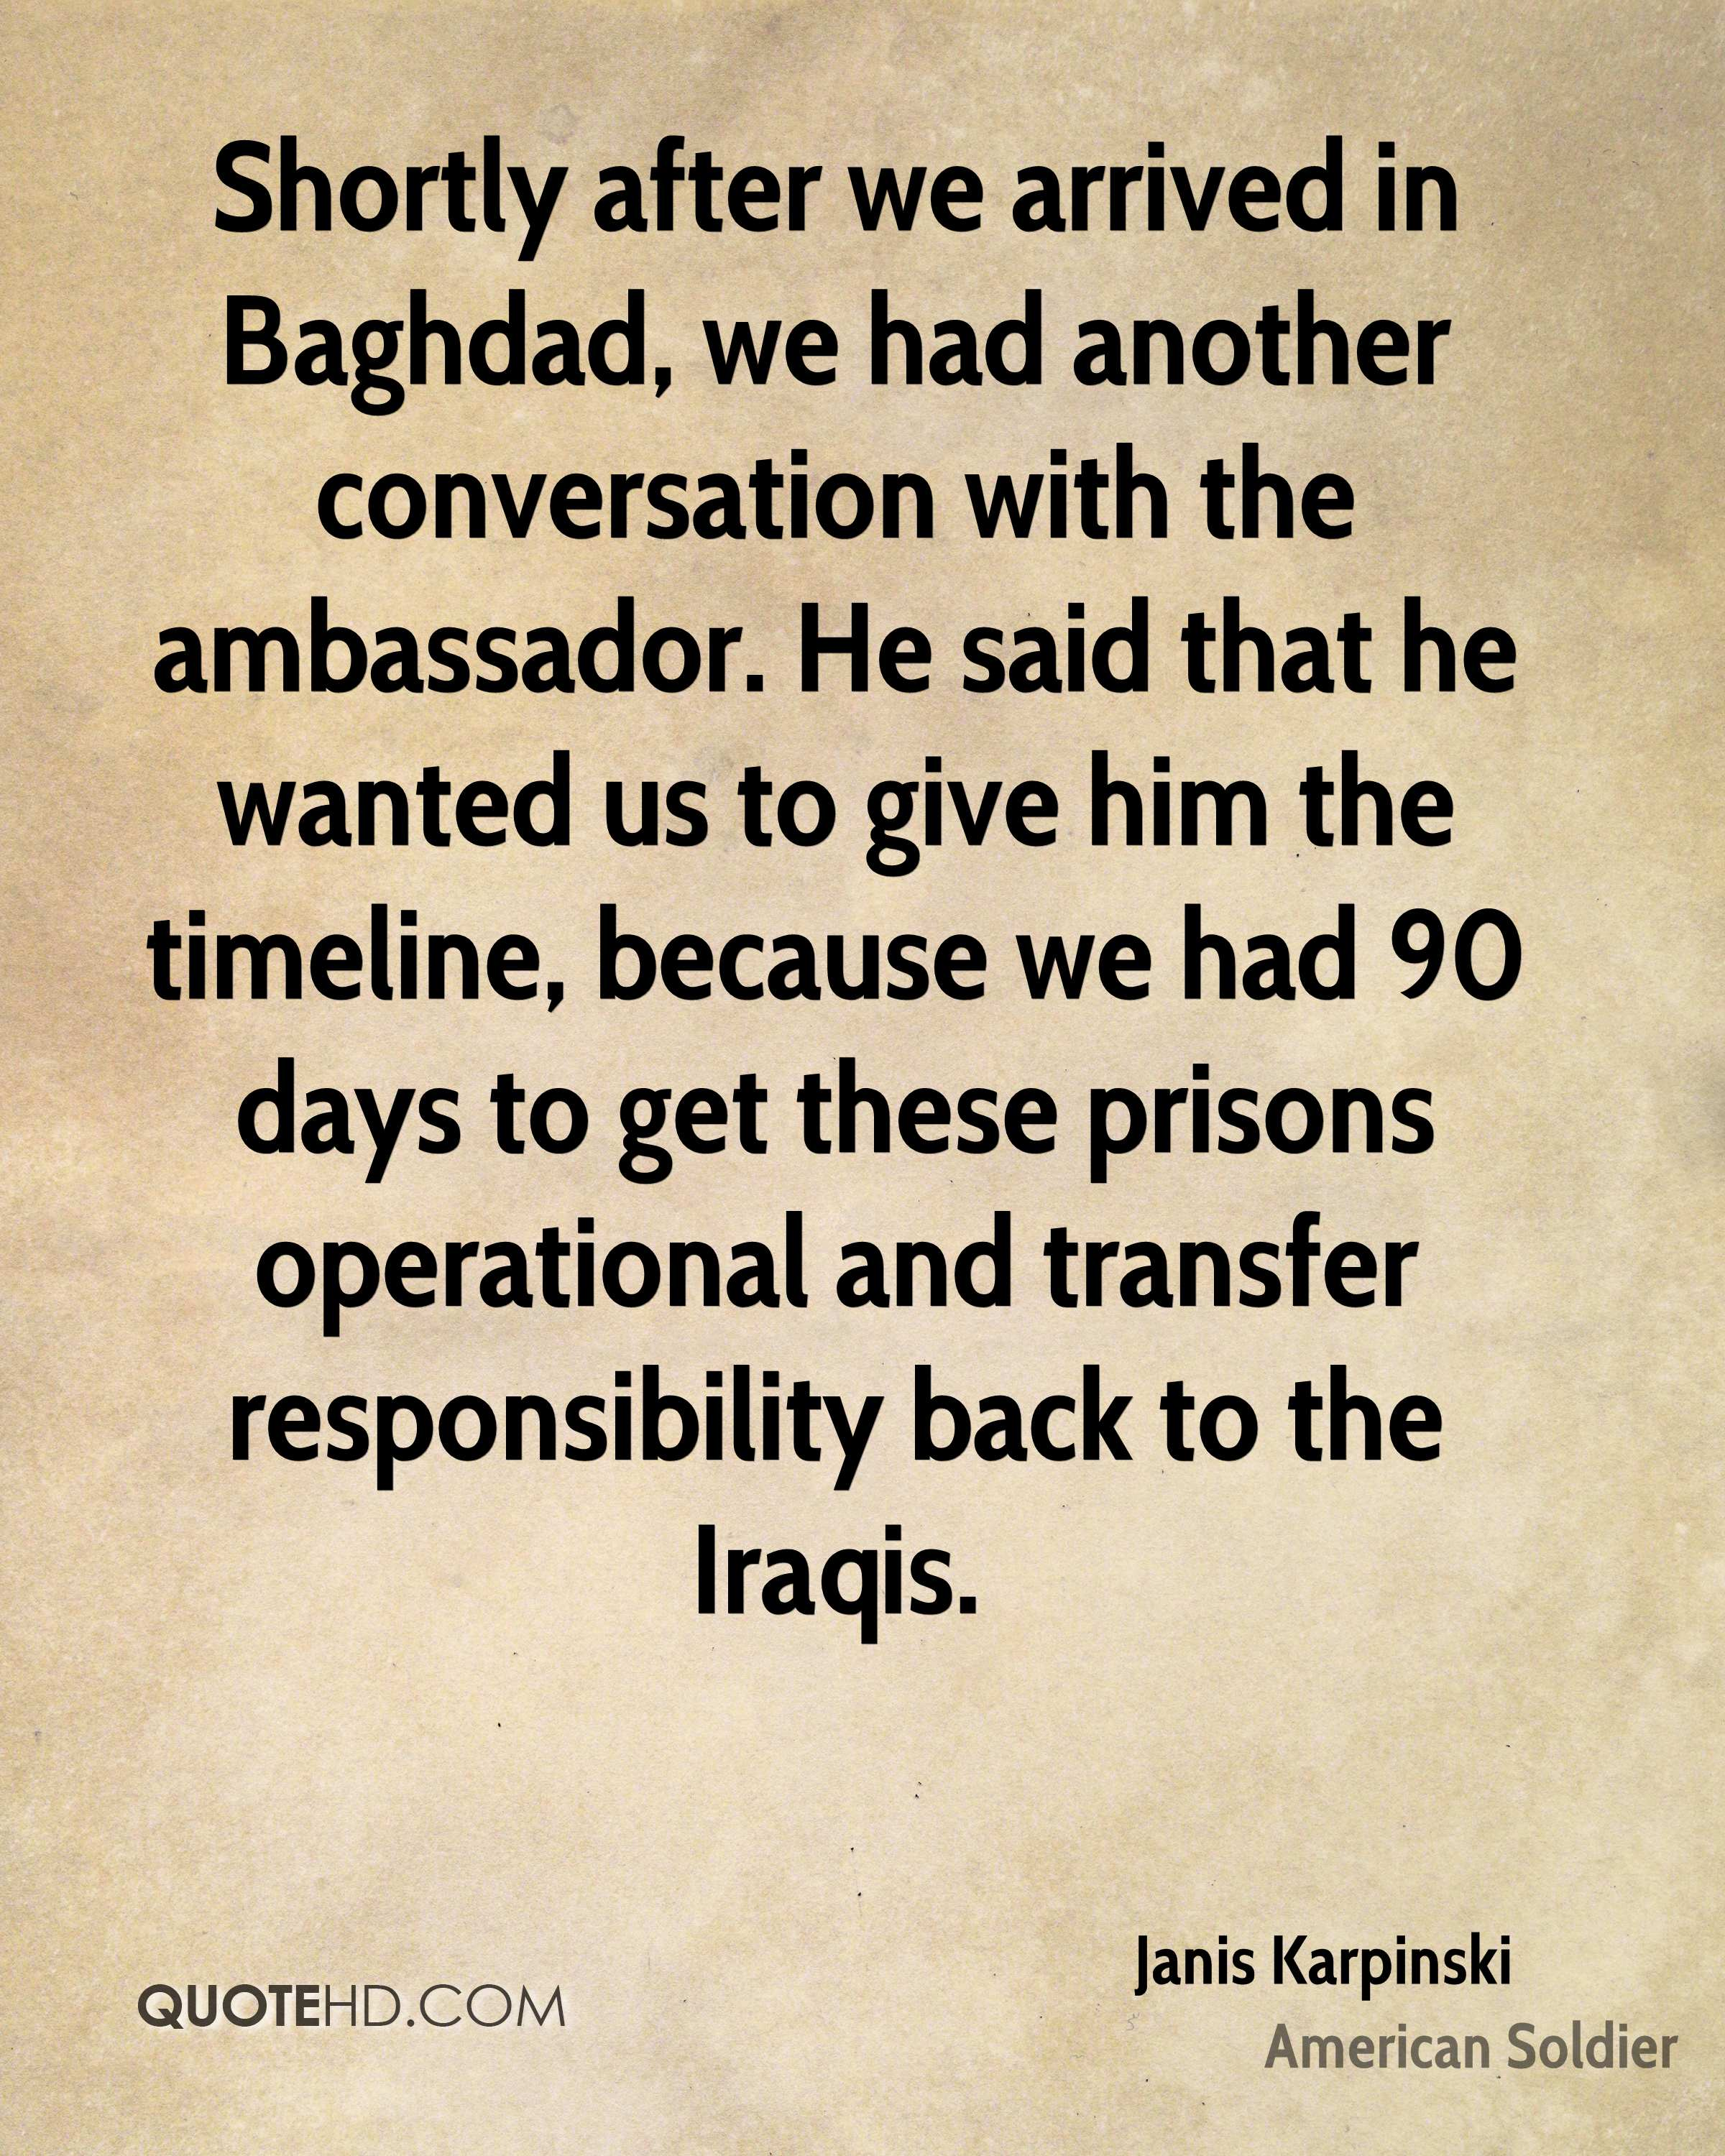 Shortly after we arrived in Baghdad, we had another conversation with the ambassador. He said that he wanted us to give him the timeline, because we had 90 days to get these prisons operational and transfer responsibility back to the Iraqis.